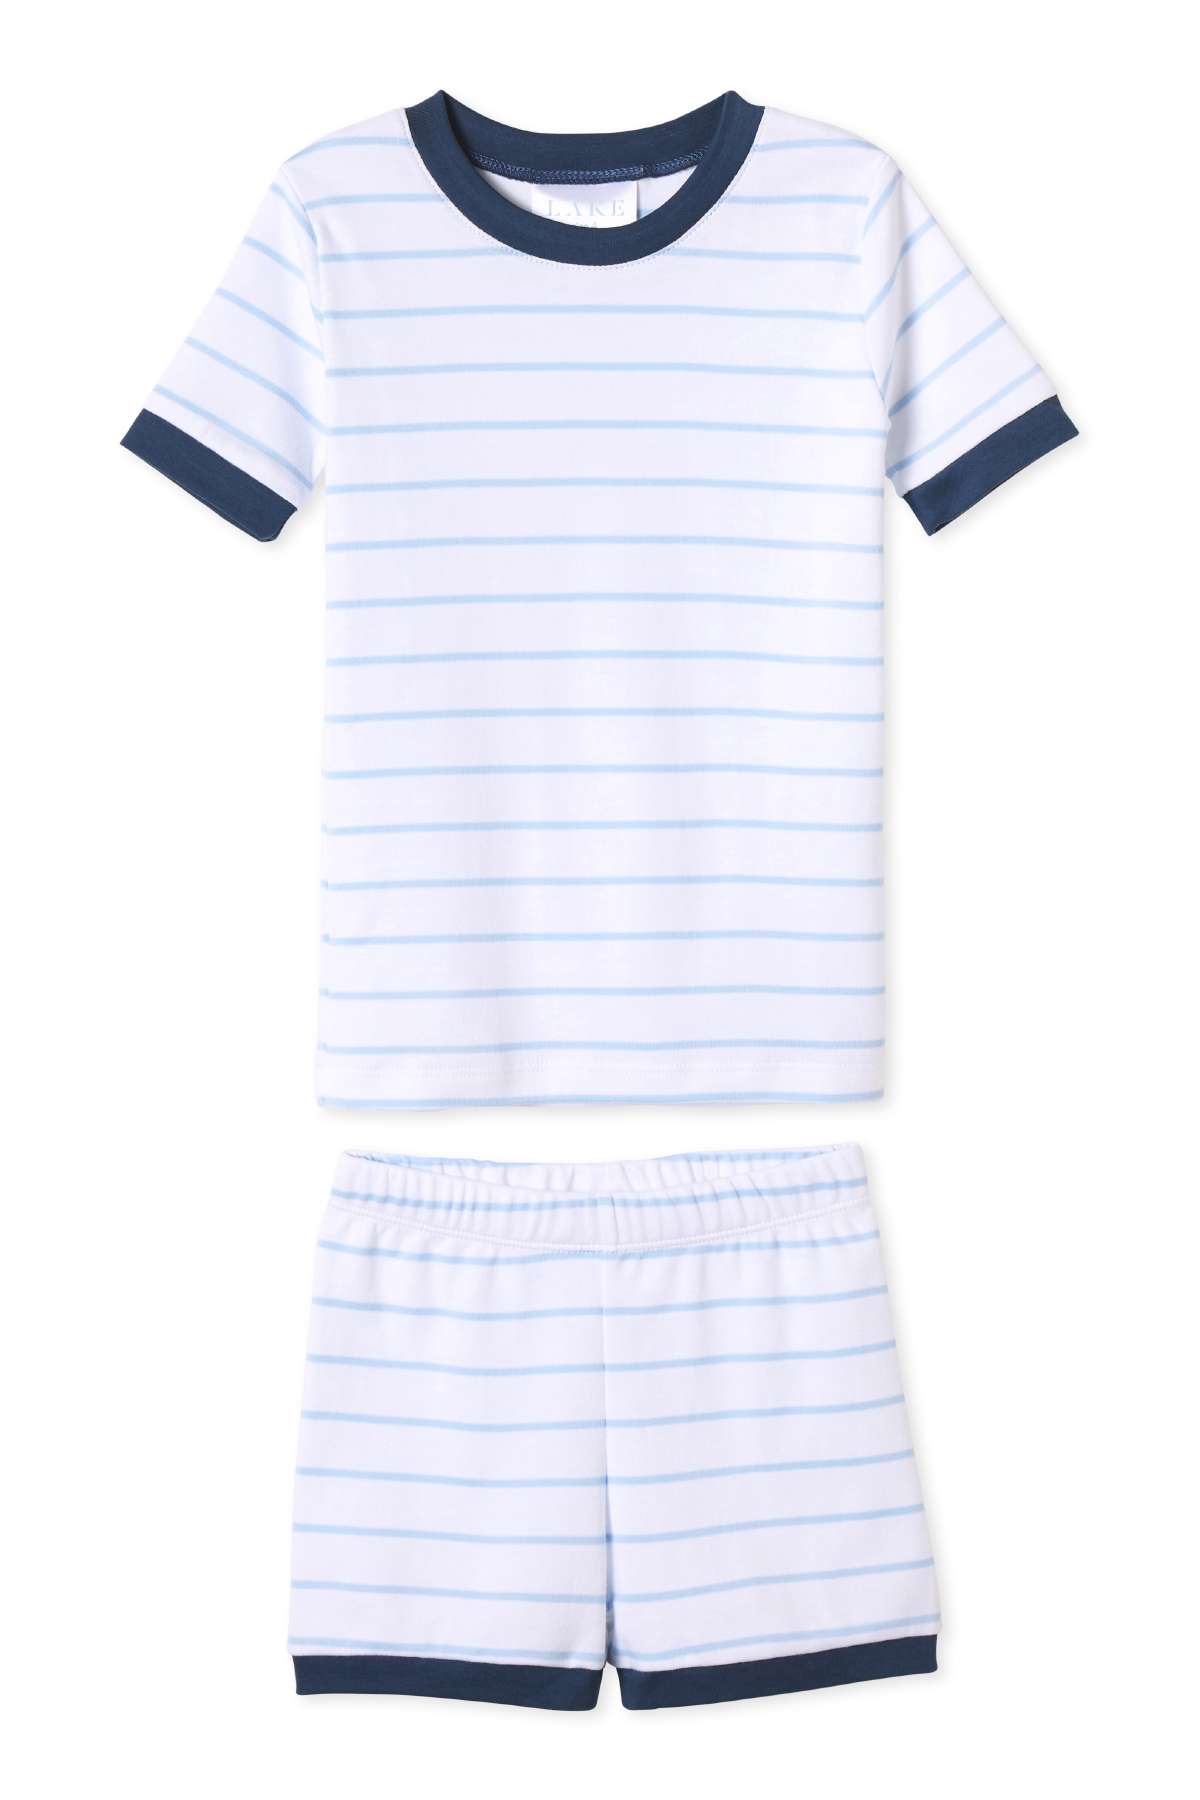 Kids Shorts Set in Marine